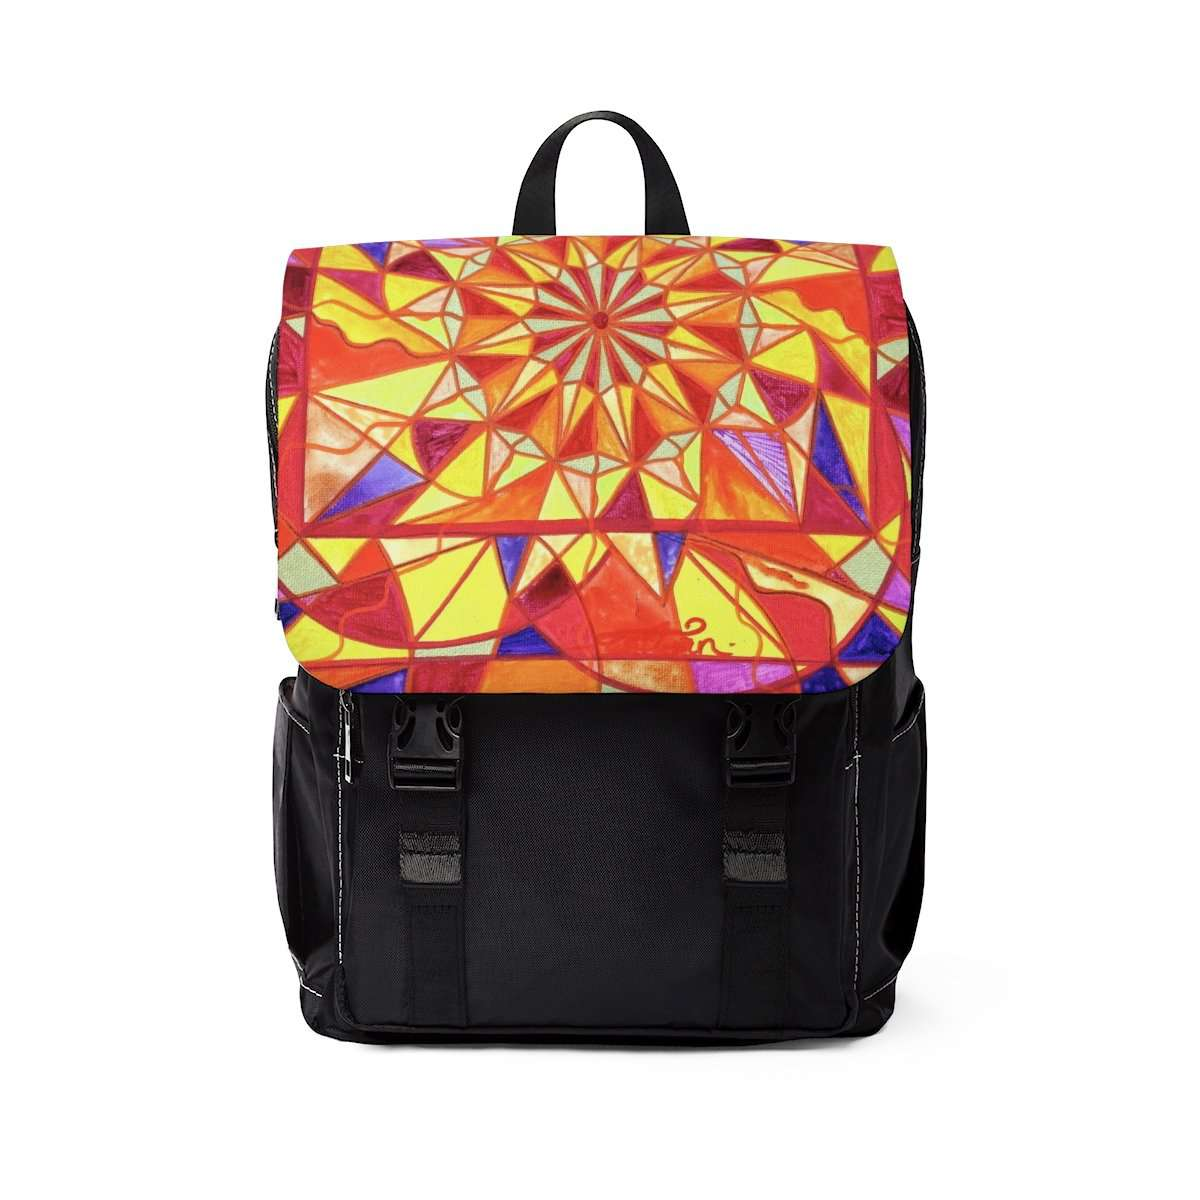 Ambition - Unisex Casual Shoulder Backpack